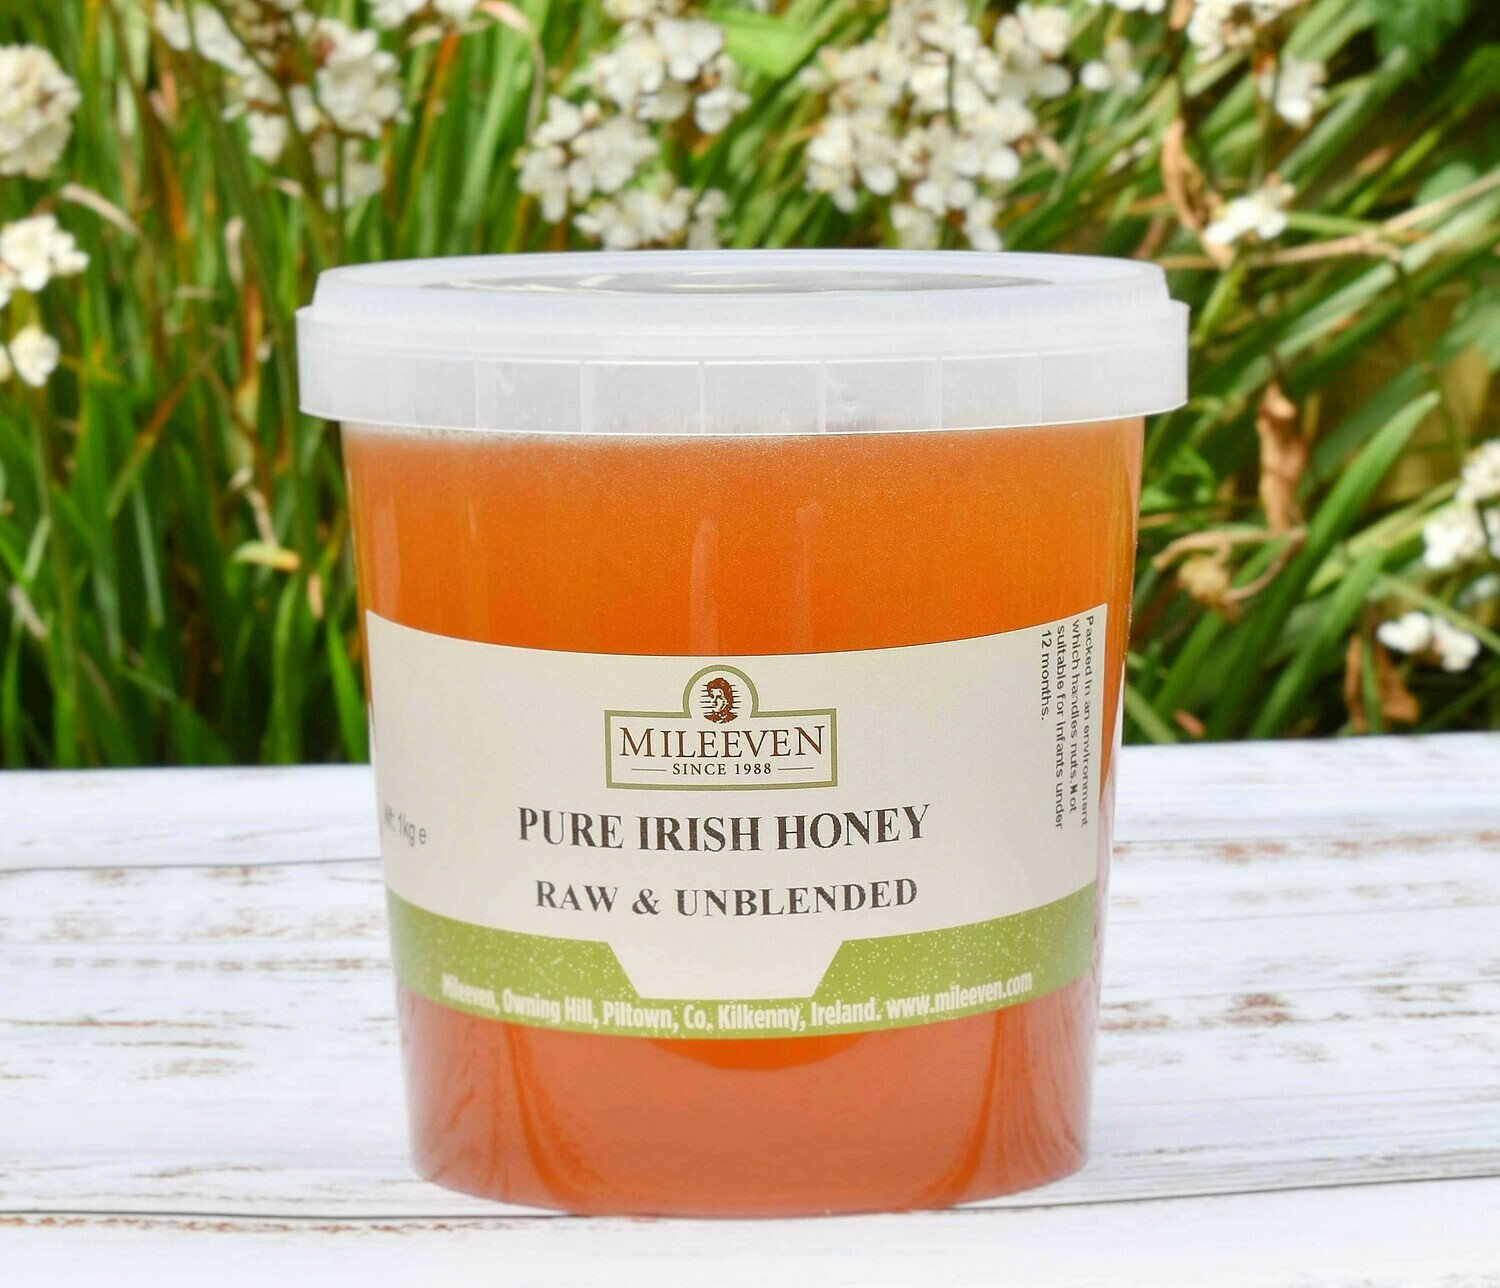 Mileeven 1kg Pure Irish Honey, Raw & Unblended